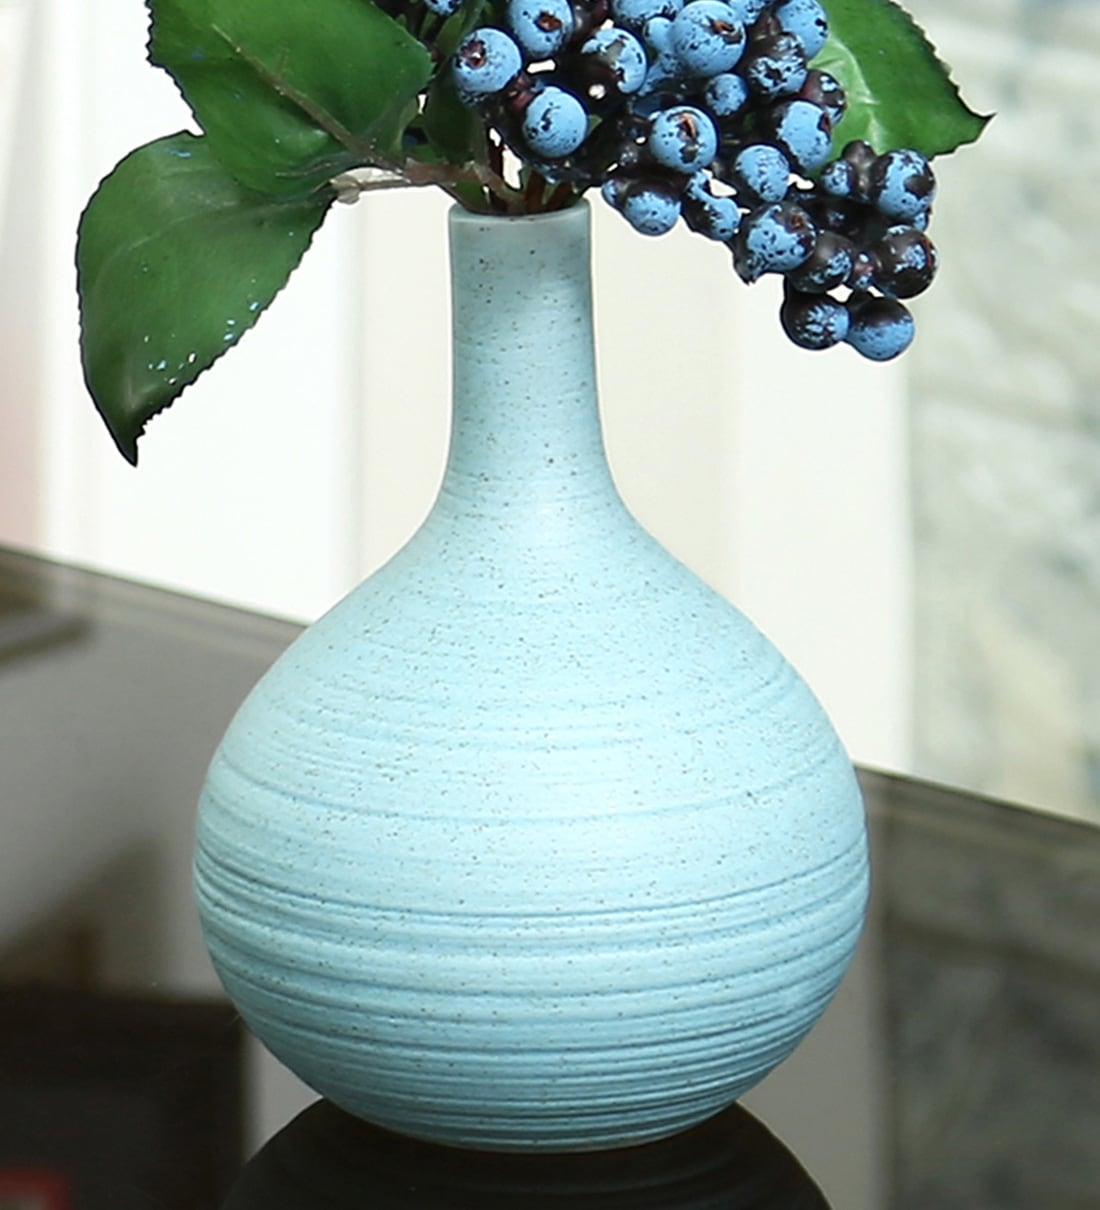 Buy Aqua Traditional Design Ceramic Vase By Aapno Rajasthan Online Modern And Contemporary Vases Vases Home Decor Pepperfry Product